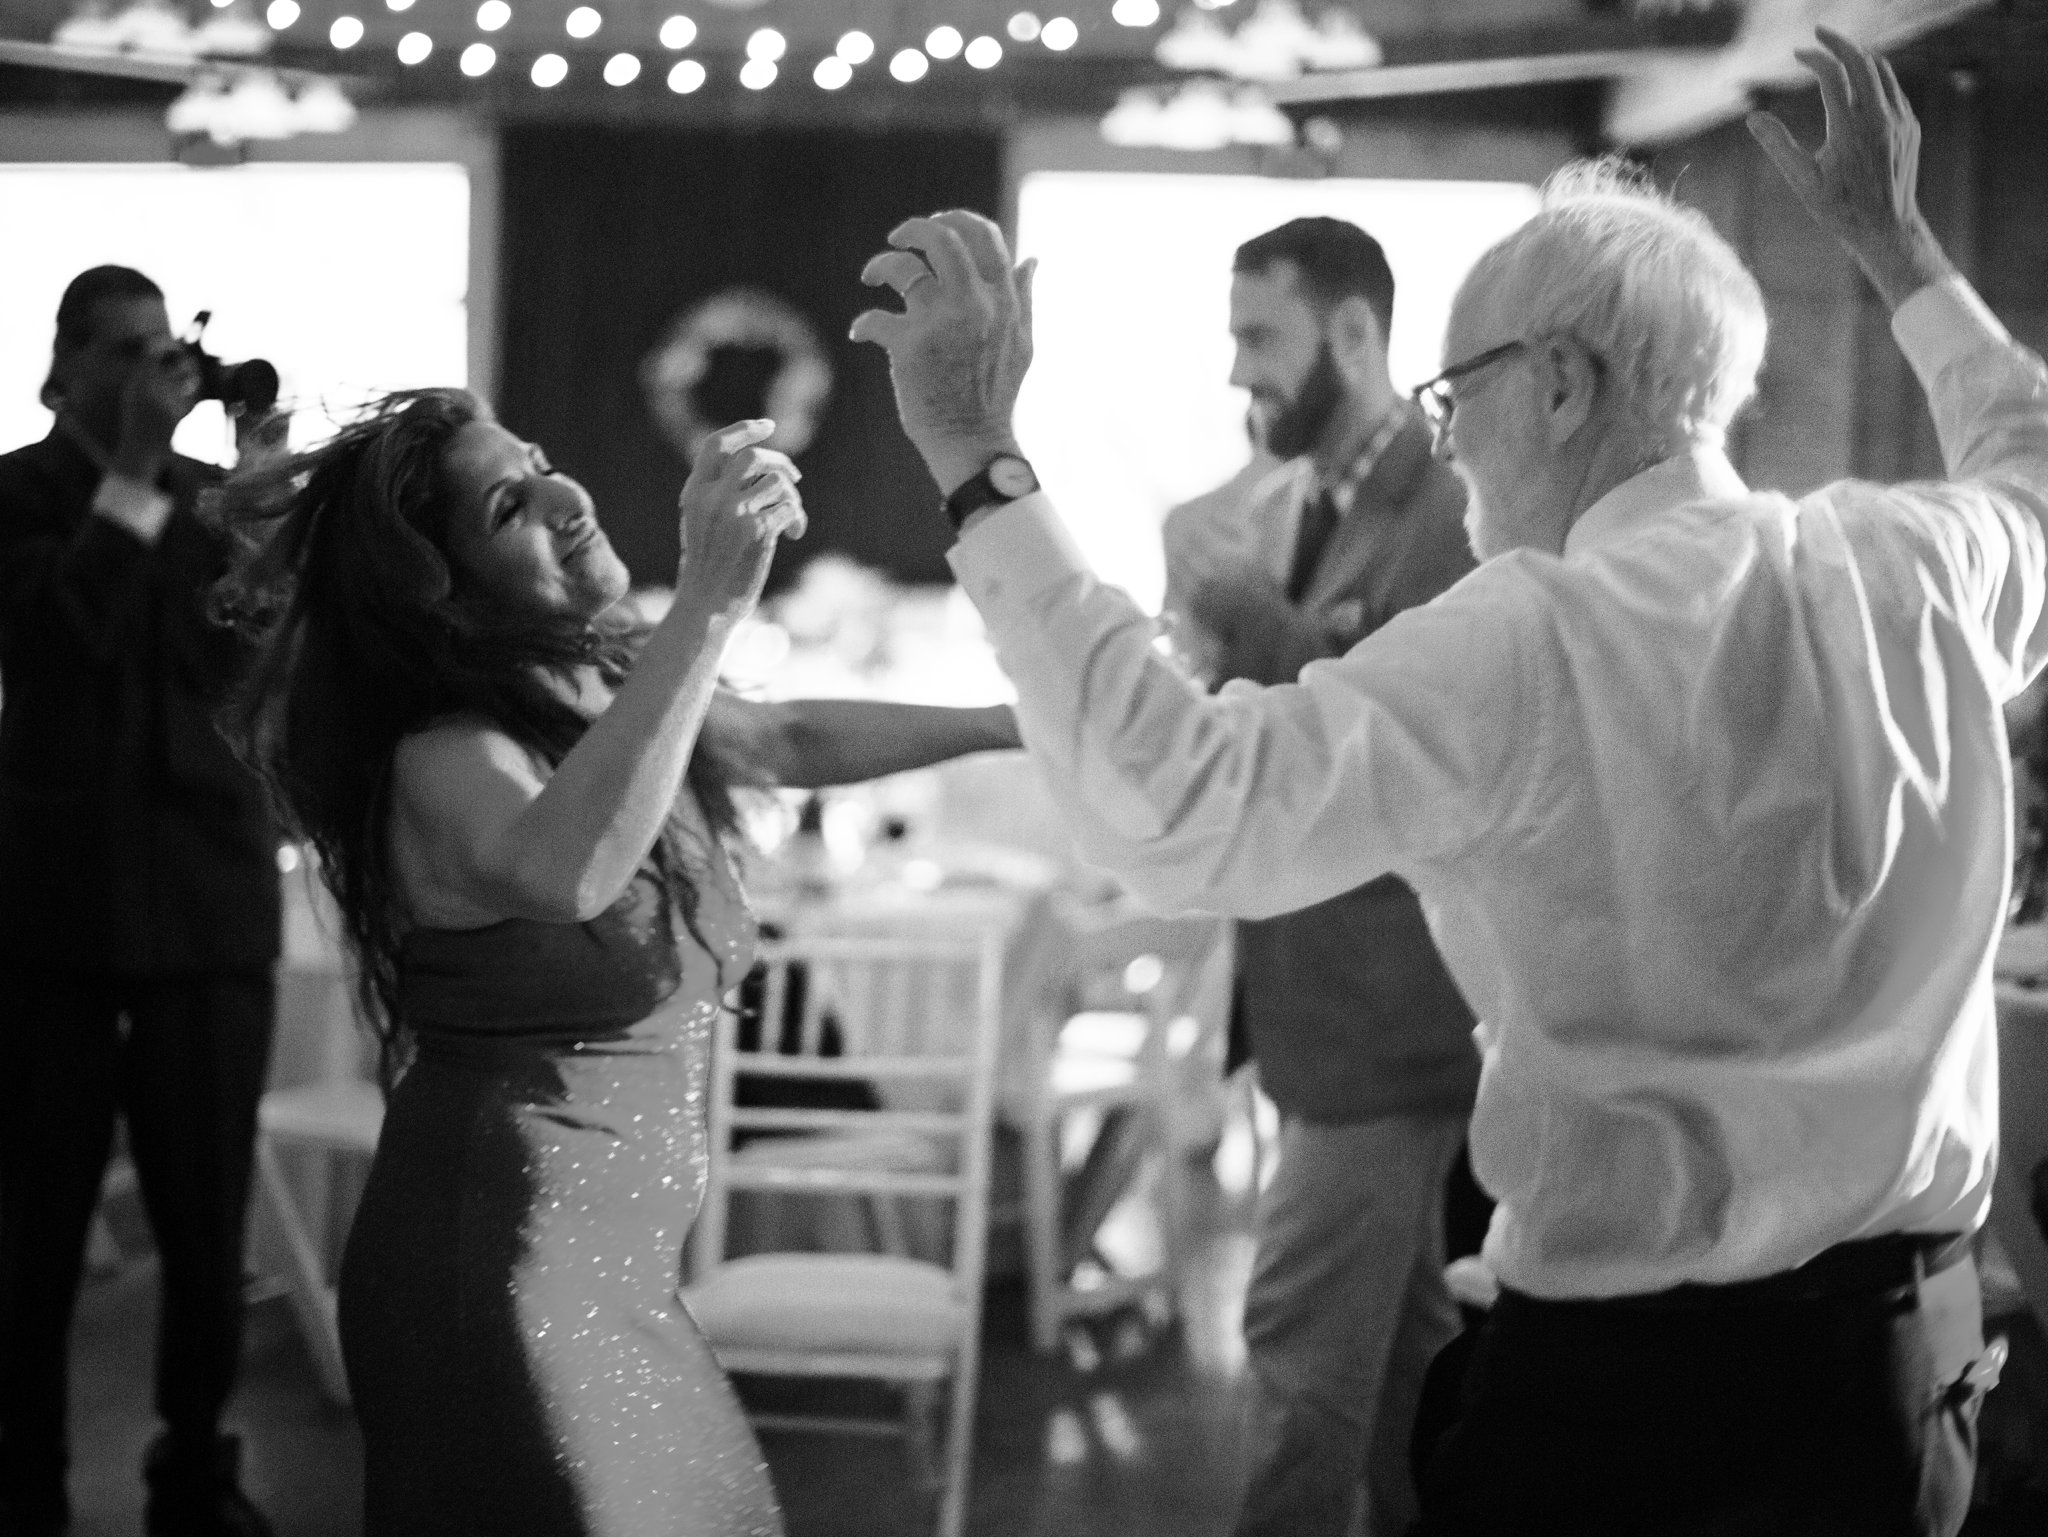 Persian-Jewish wedding goodwood wedding photographer tallahassee florida shannon griffin photography_0011.jpg